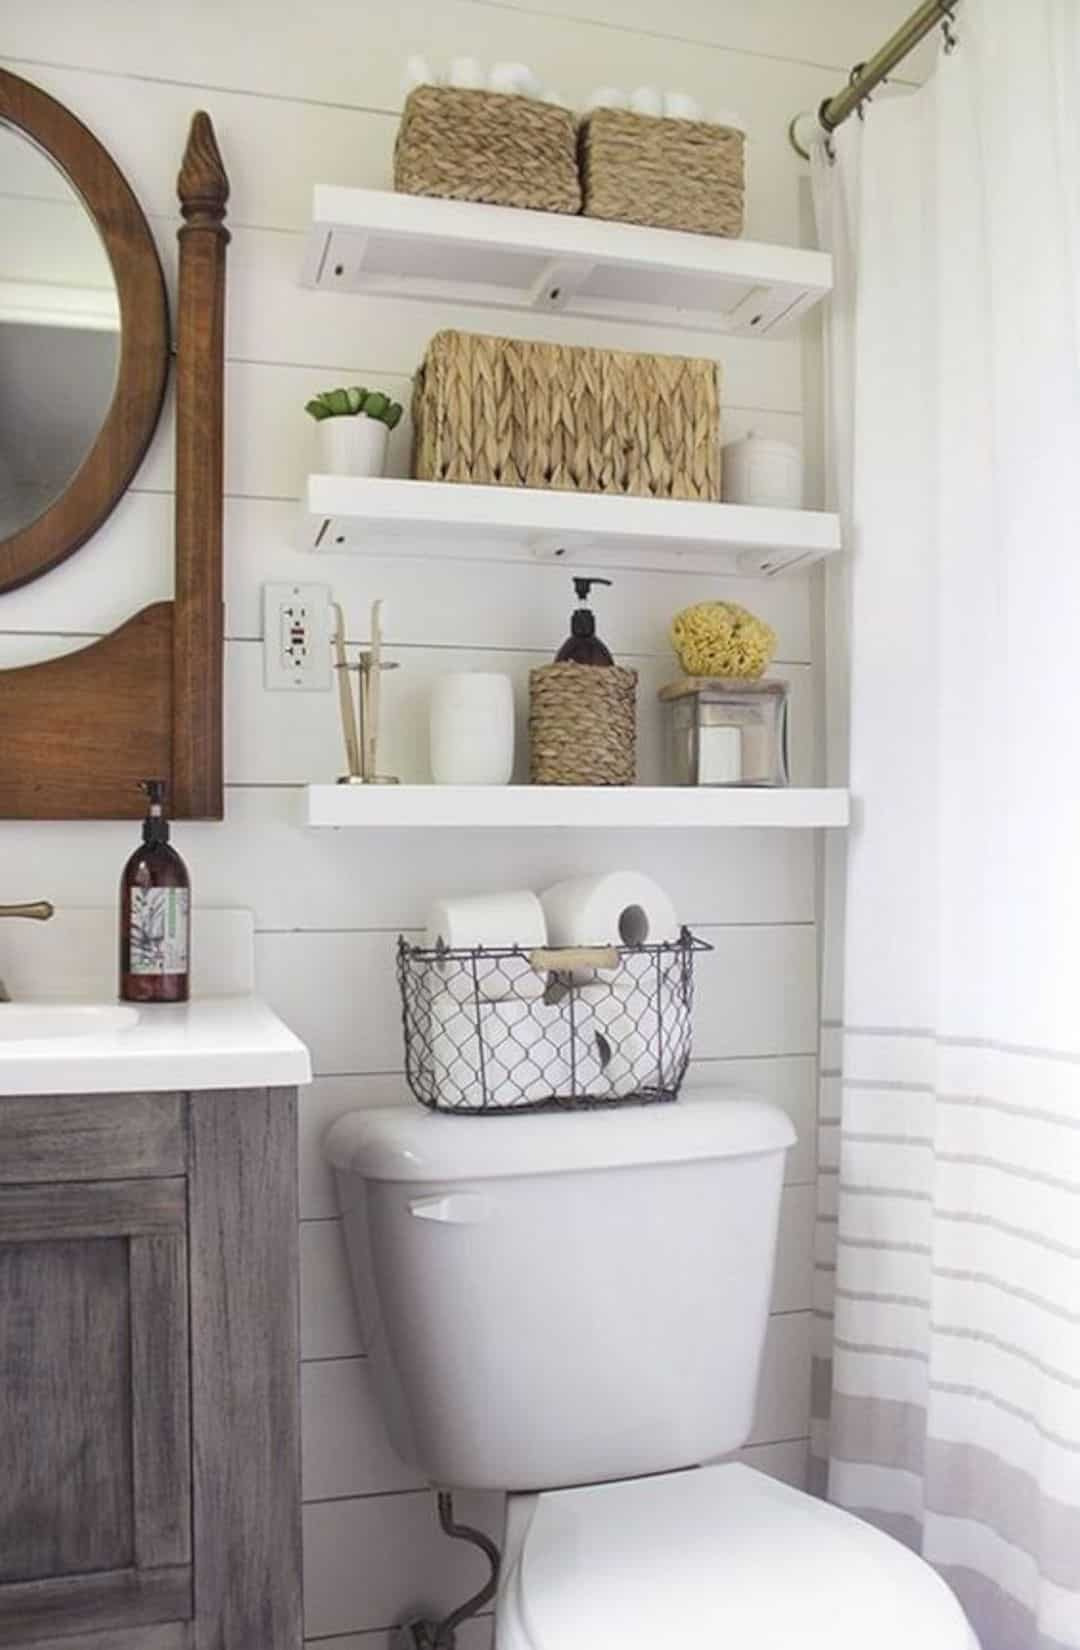 Small Bathroom Decorating Tips Lovely 17 Awesome Small Bathroom Decorating Ideas